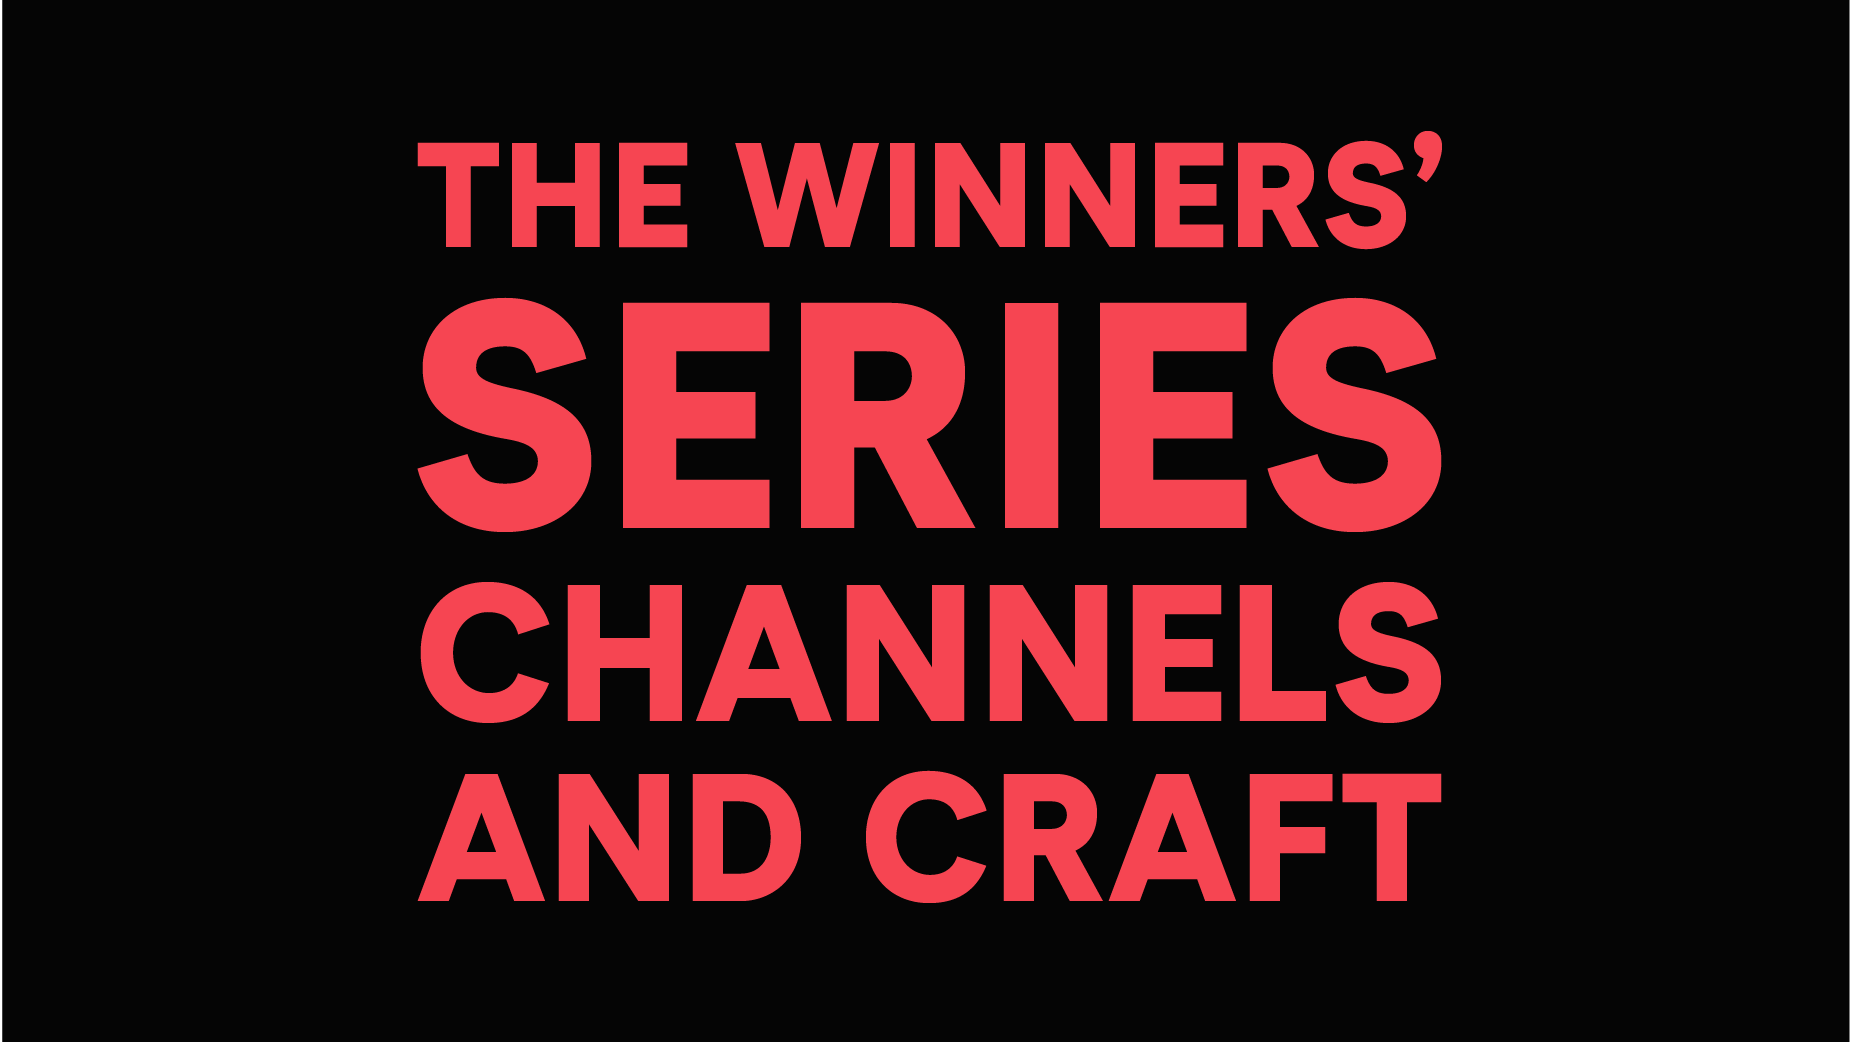 The-winners-series-Channel and craft_web.png